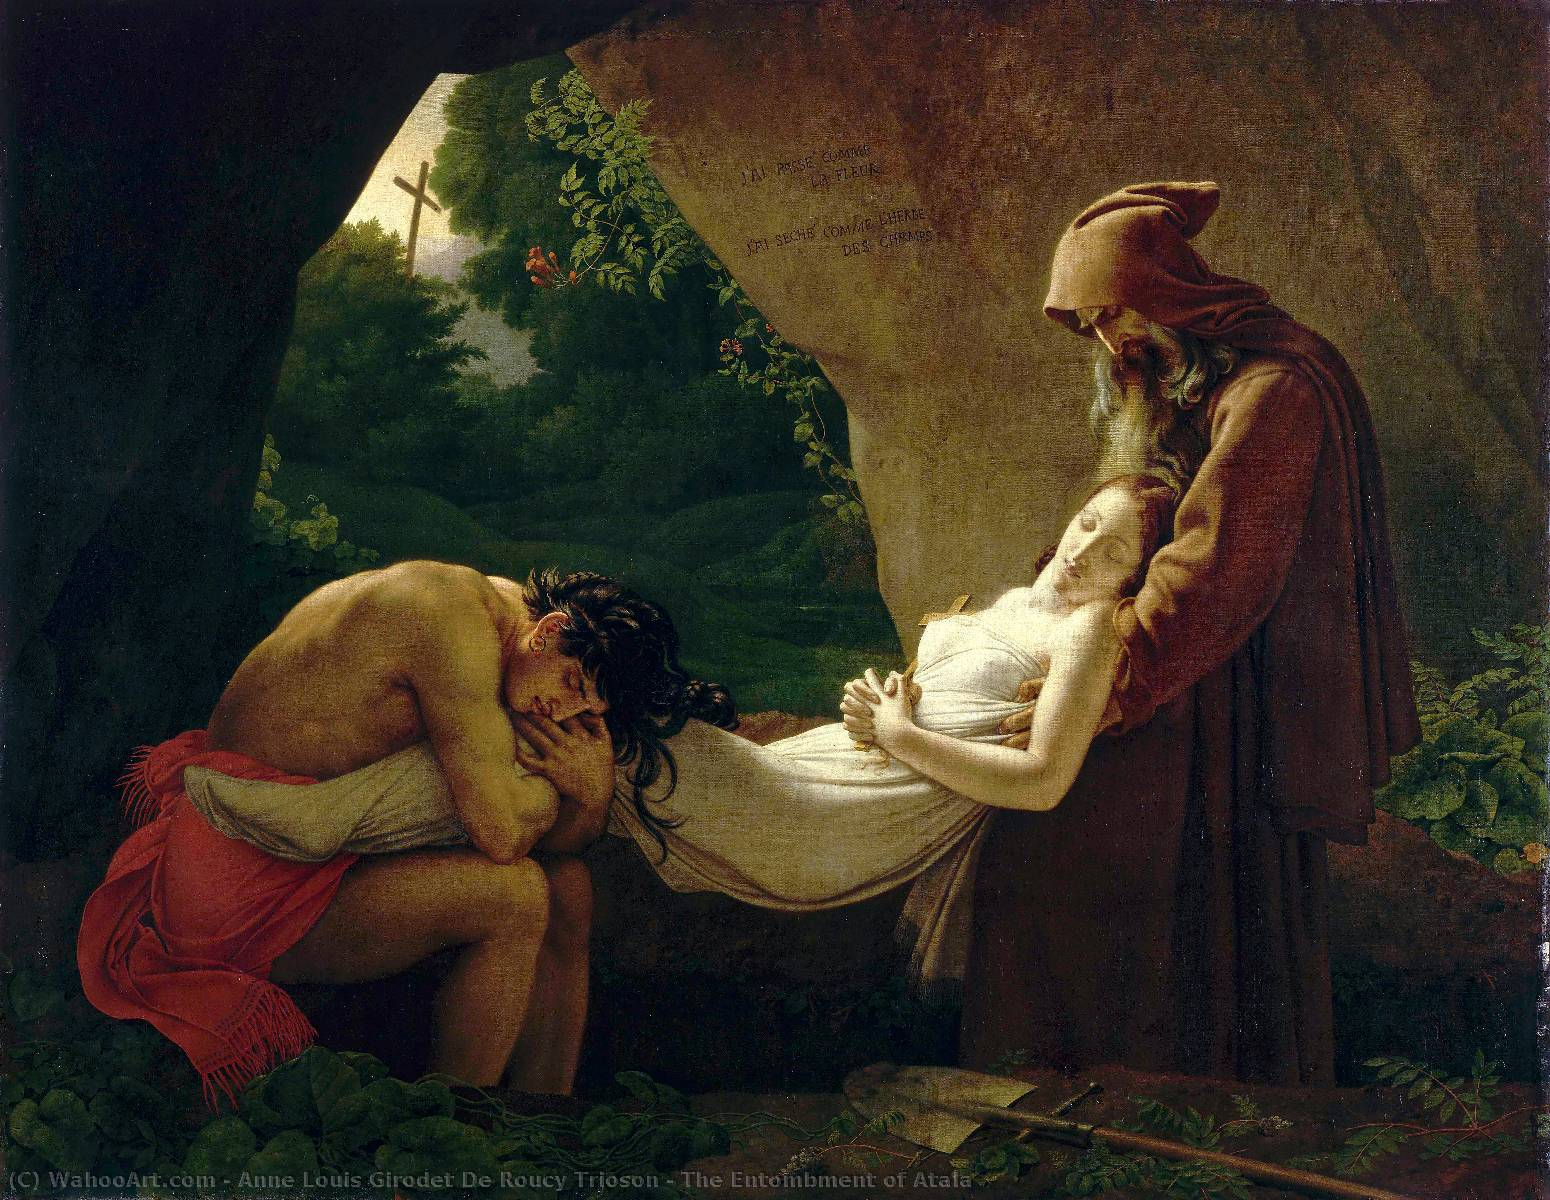 The Entombment of Atala, Oil On Canvas by Anne Louis Girodet De Roucy Trioson (1767-1824, France)